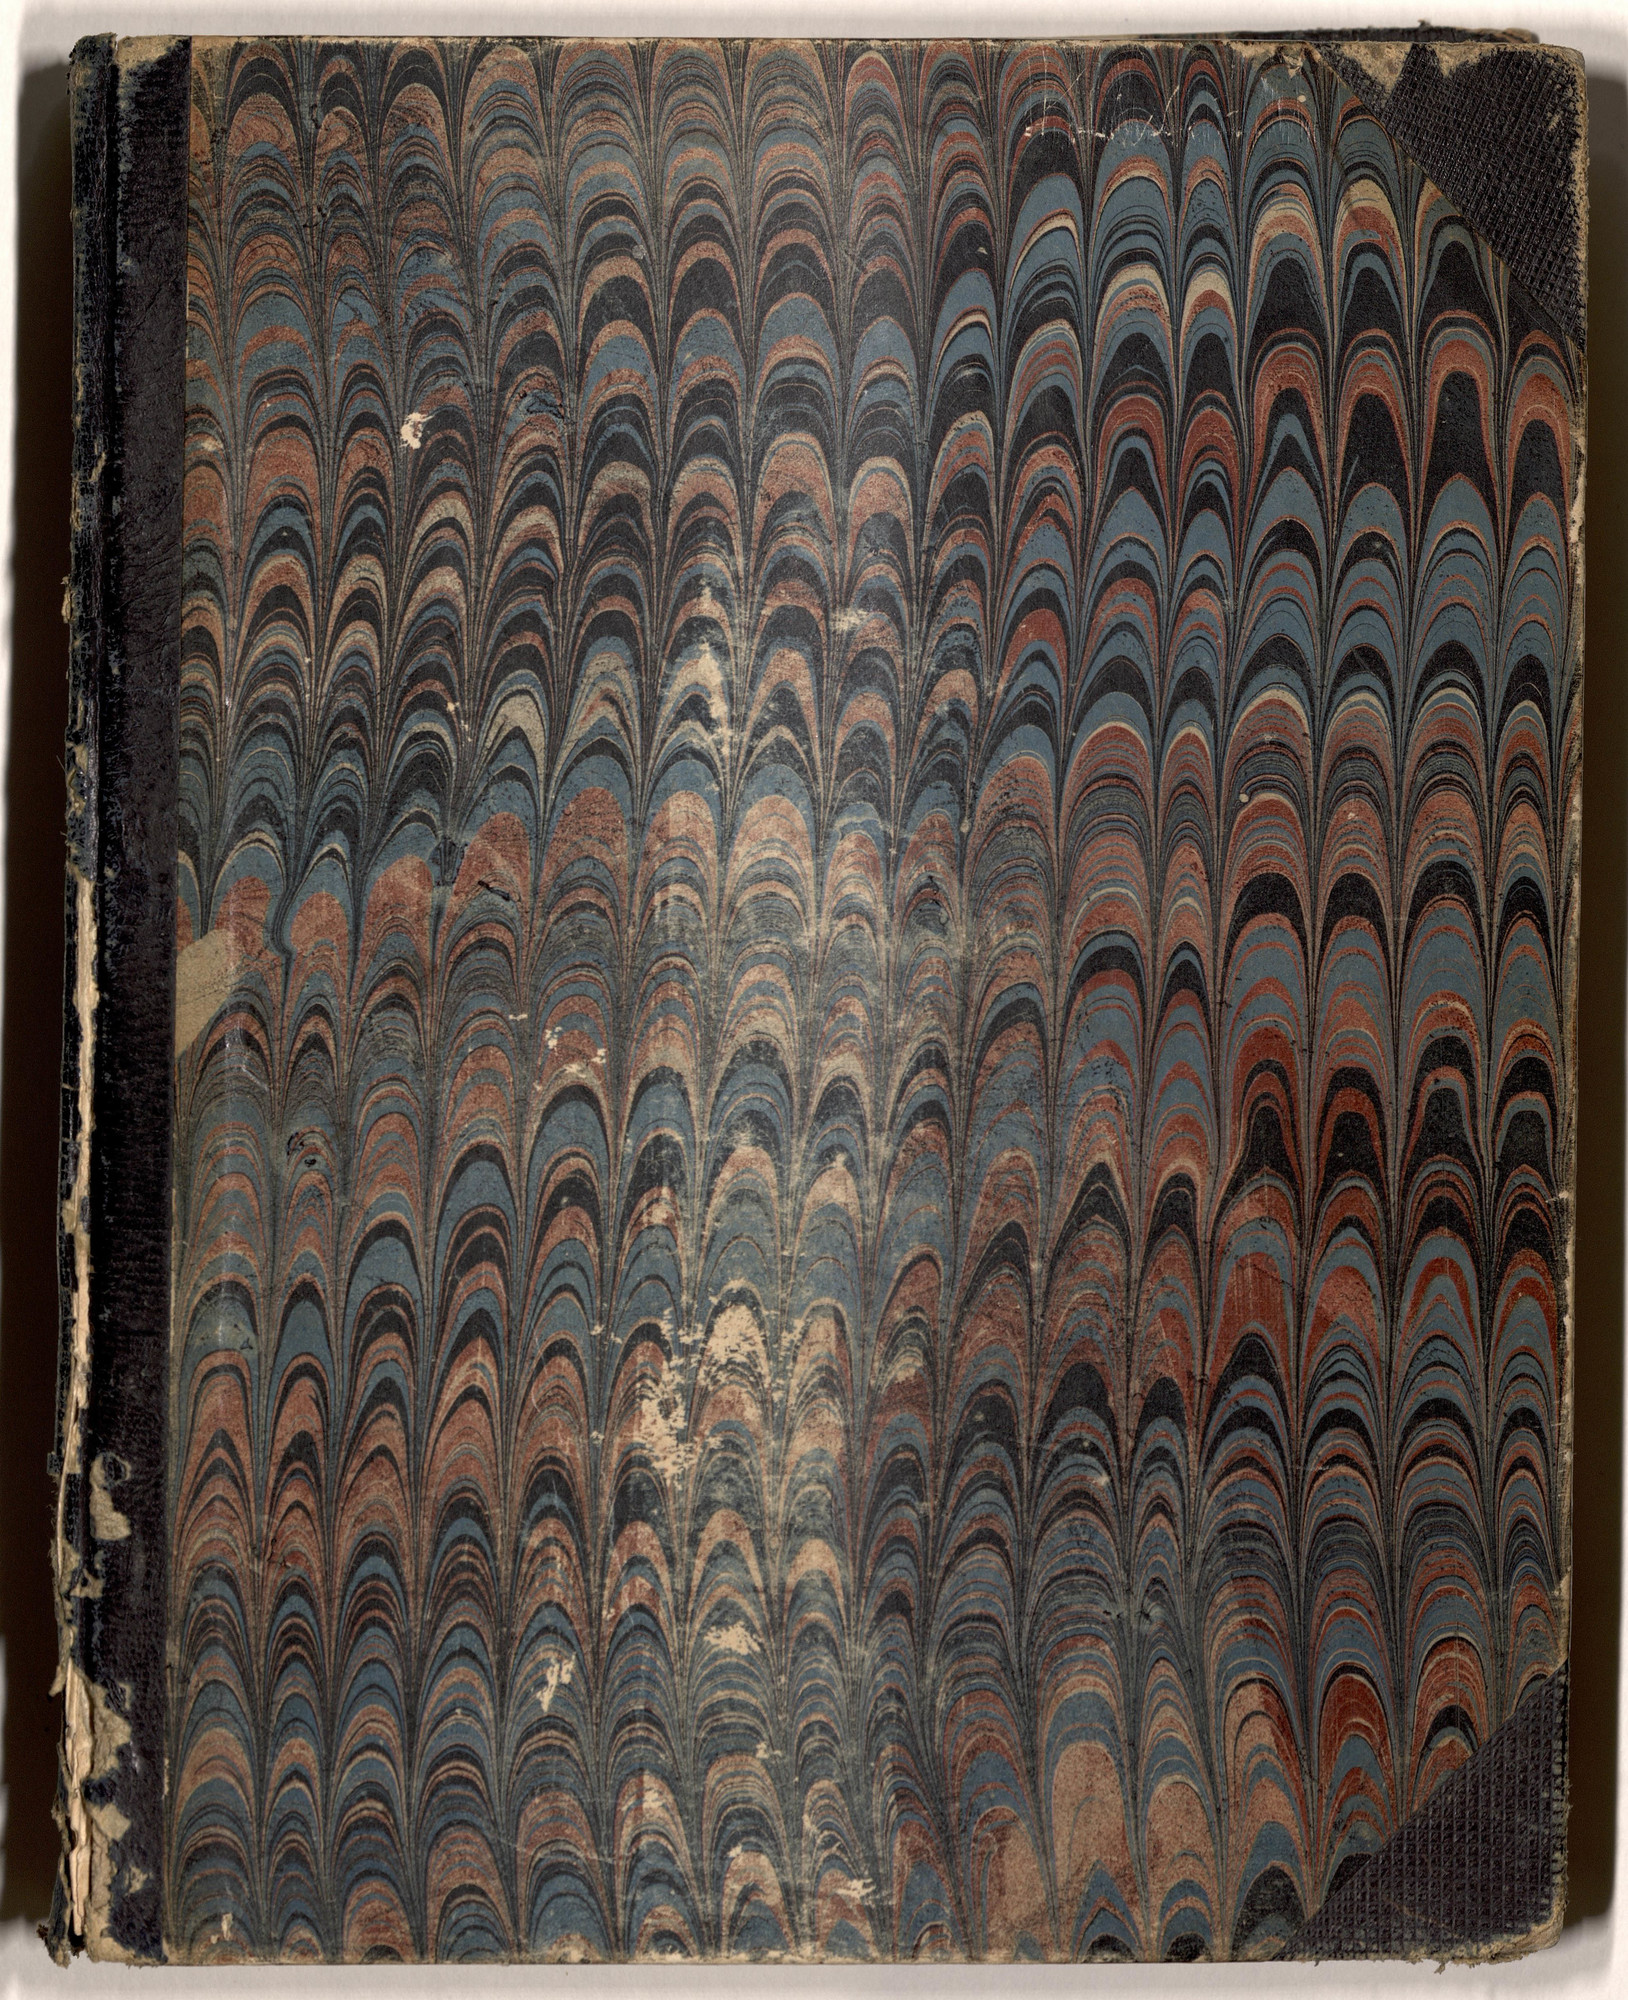 Ms1990-060_BenjaminFranklinButler_Notebook_1865_Coverfront.jpg